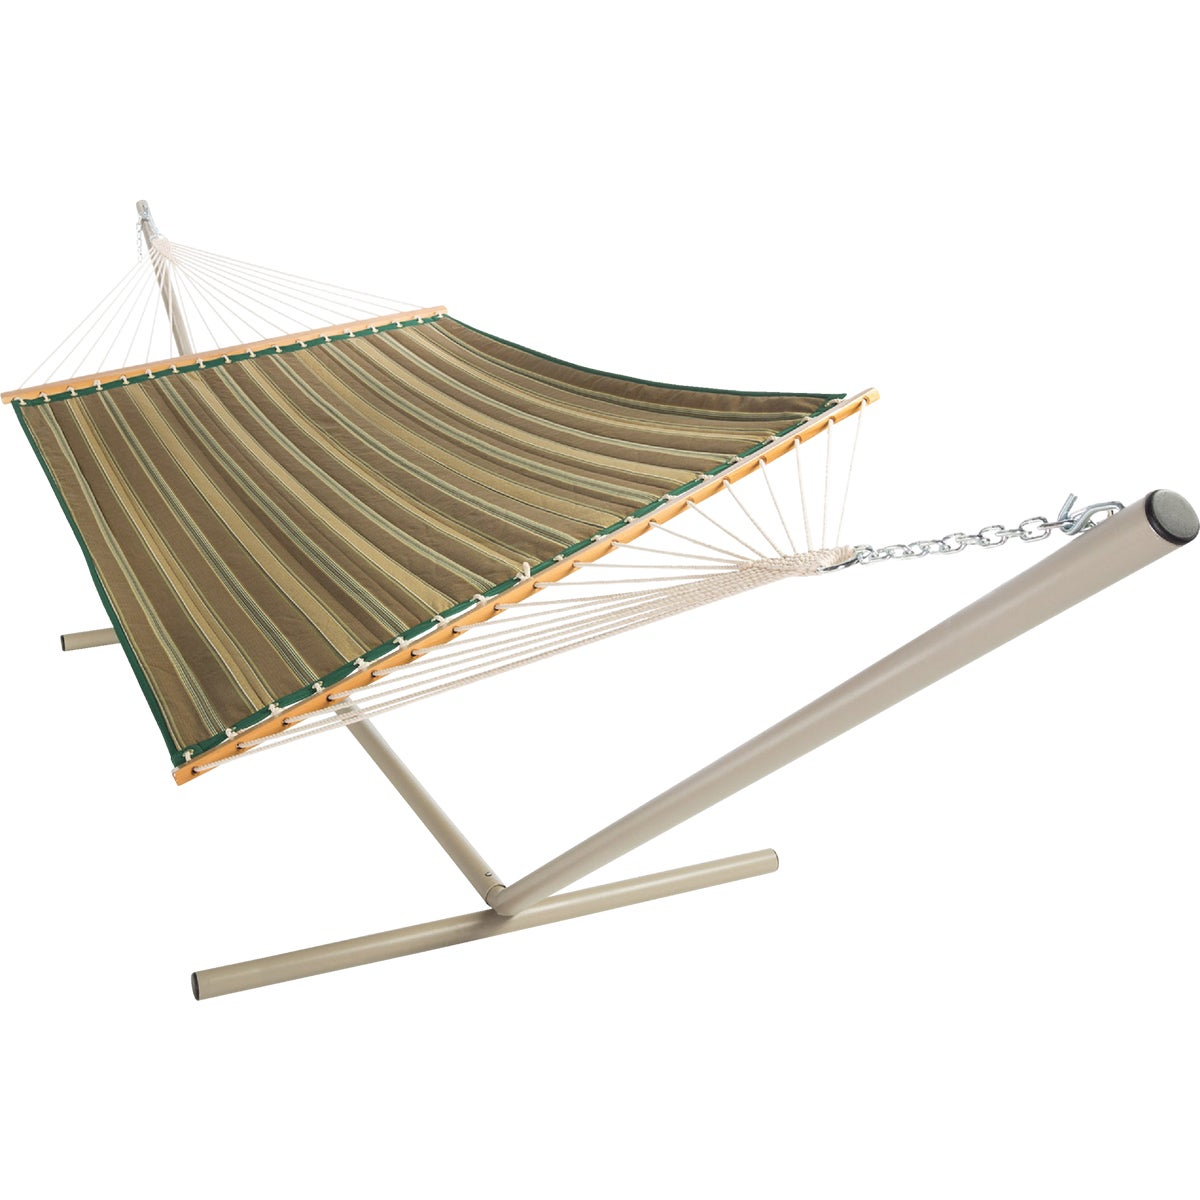 GRN/WHT QUILTED HAMMOCK